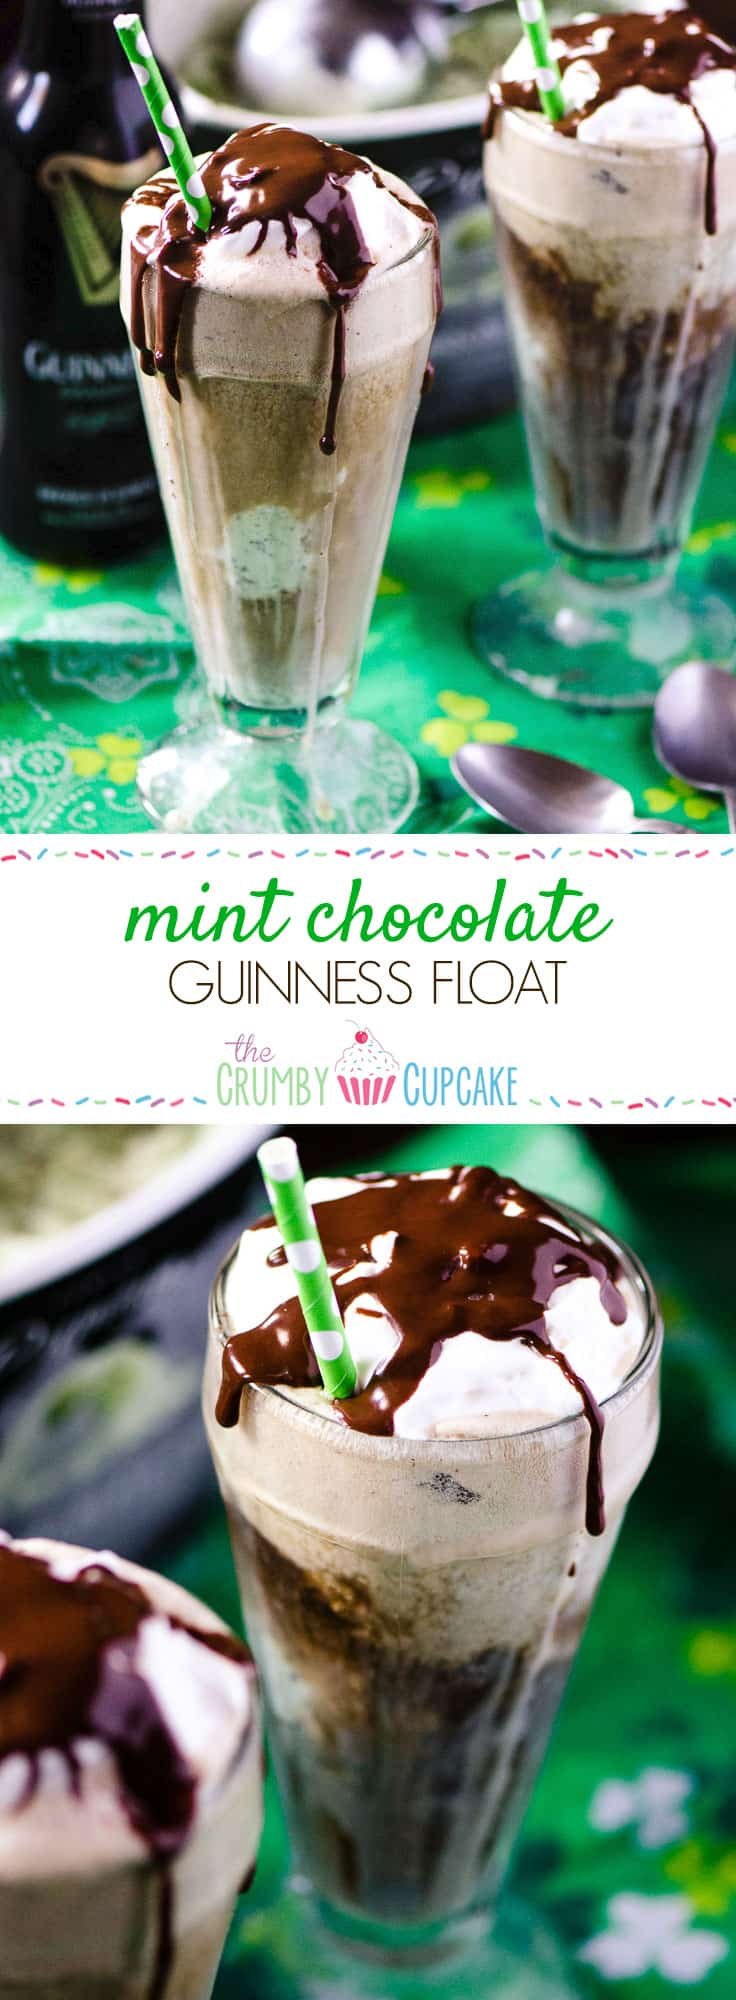 Mint Chocolate Guinness Float | Tired of the same old pint of Guinness? Kick it up Leprechaun style! Add a scoop of mint chocolate chip ice cream, a dollop of Irish cream whipped cream, and a drizzle of chocolate for a fun and festive float.